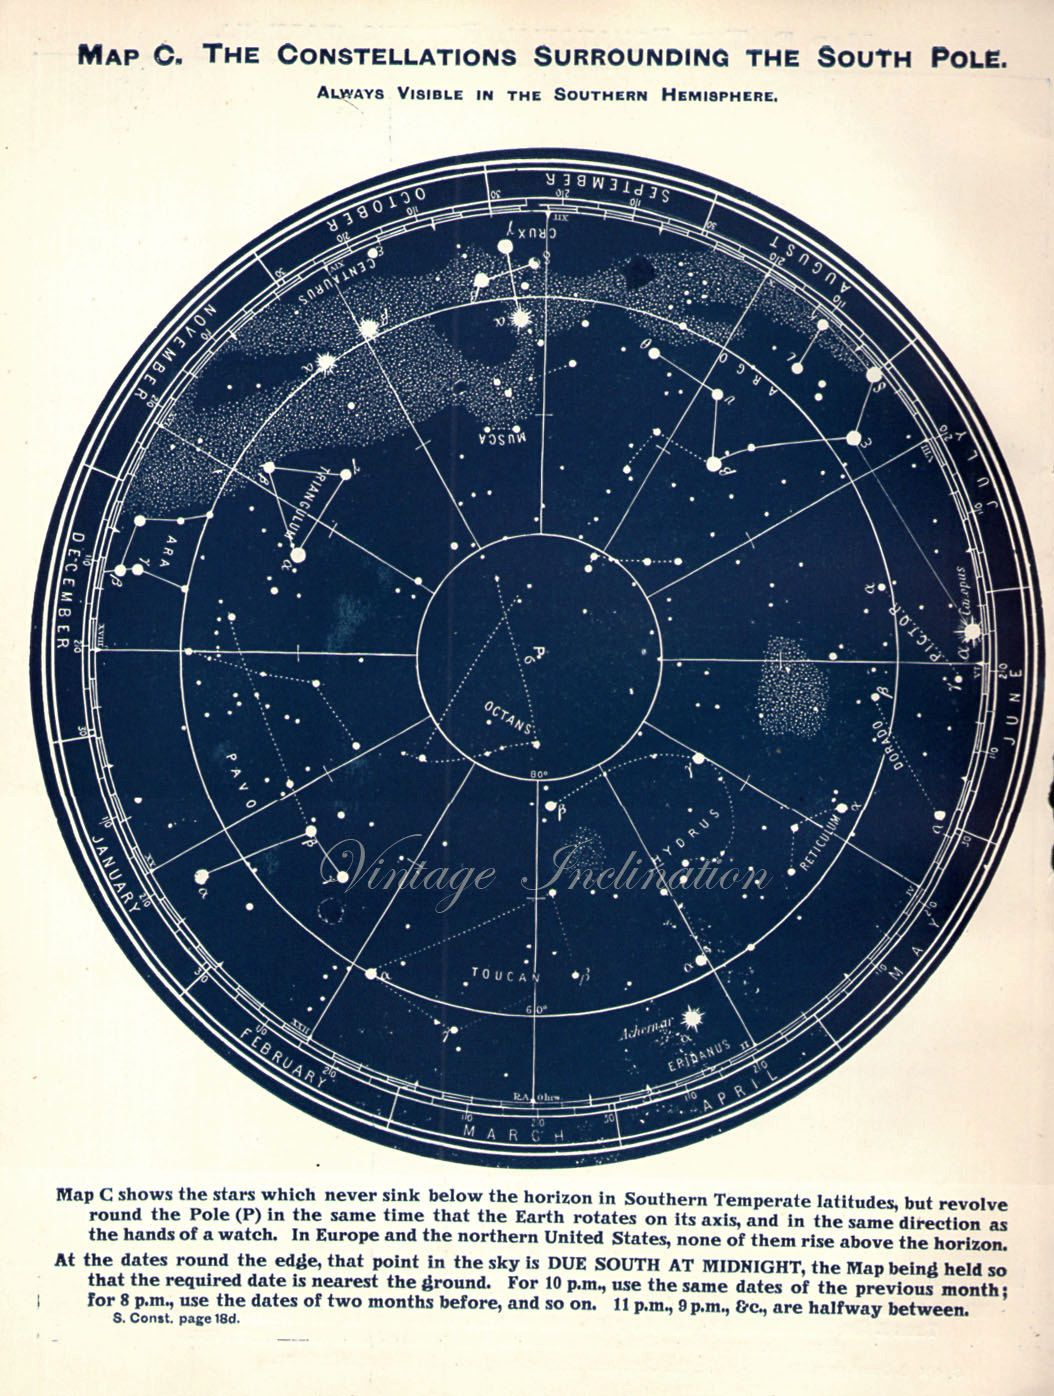 Vintage 1926 South Pole Stars Antique Star By Vintageinclination